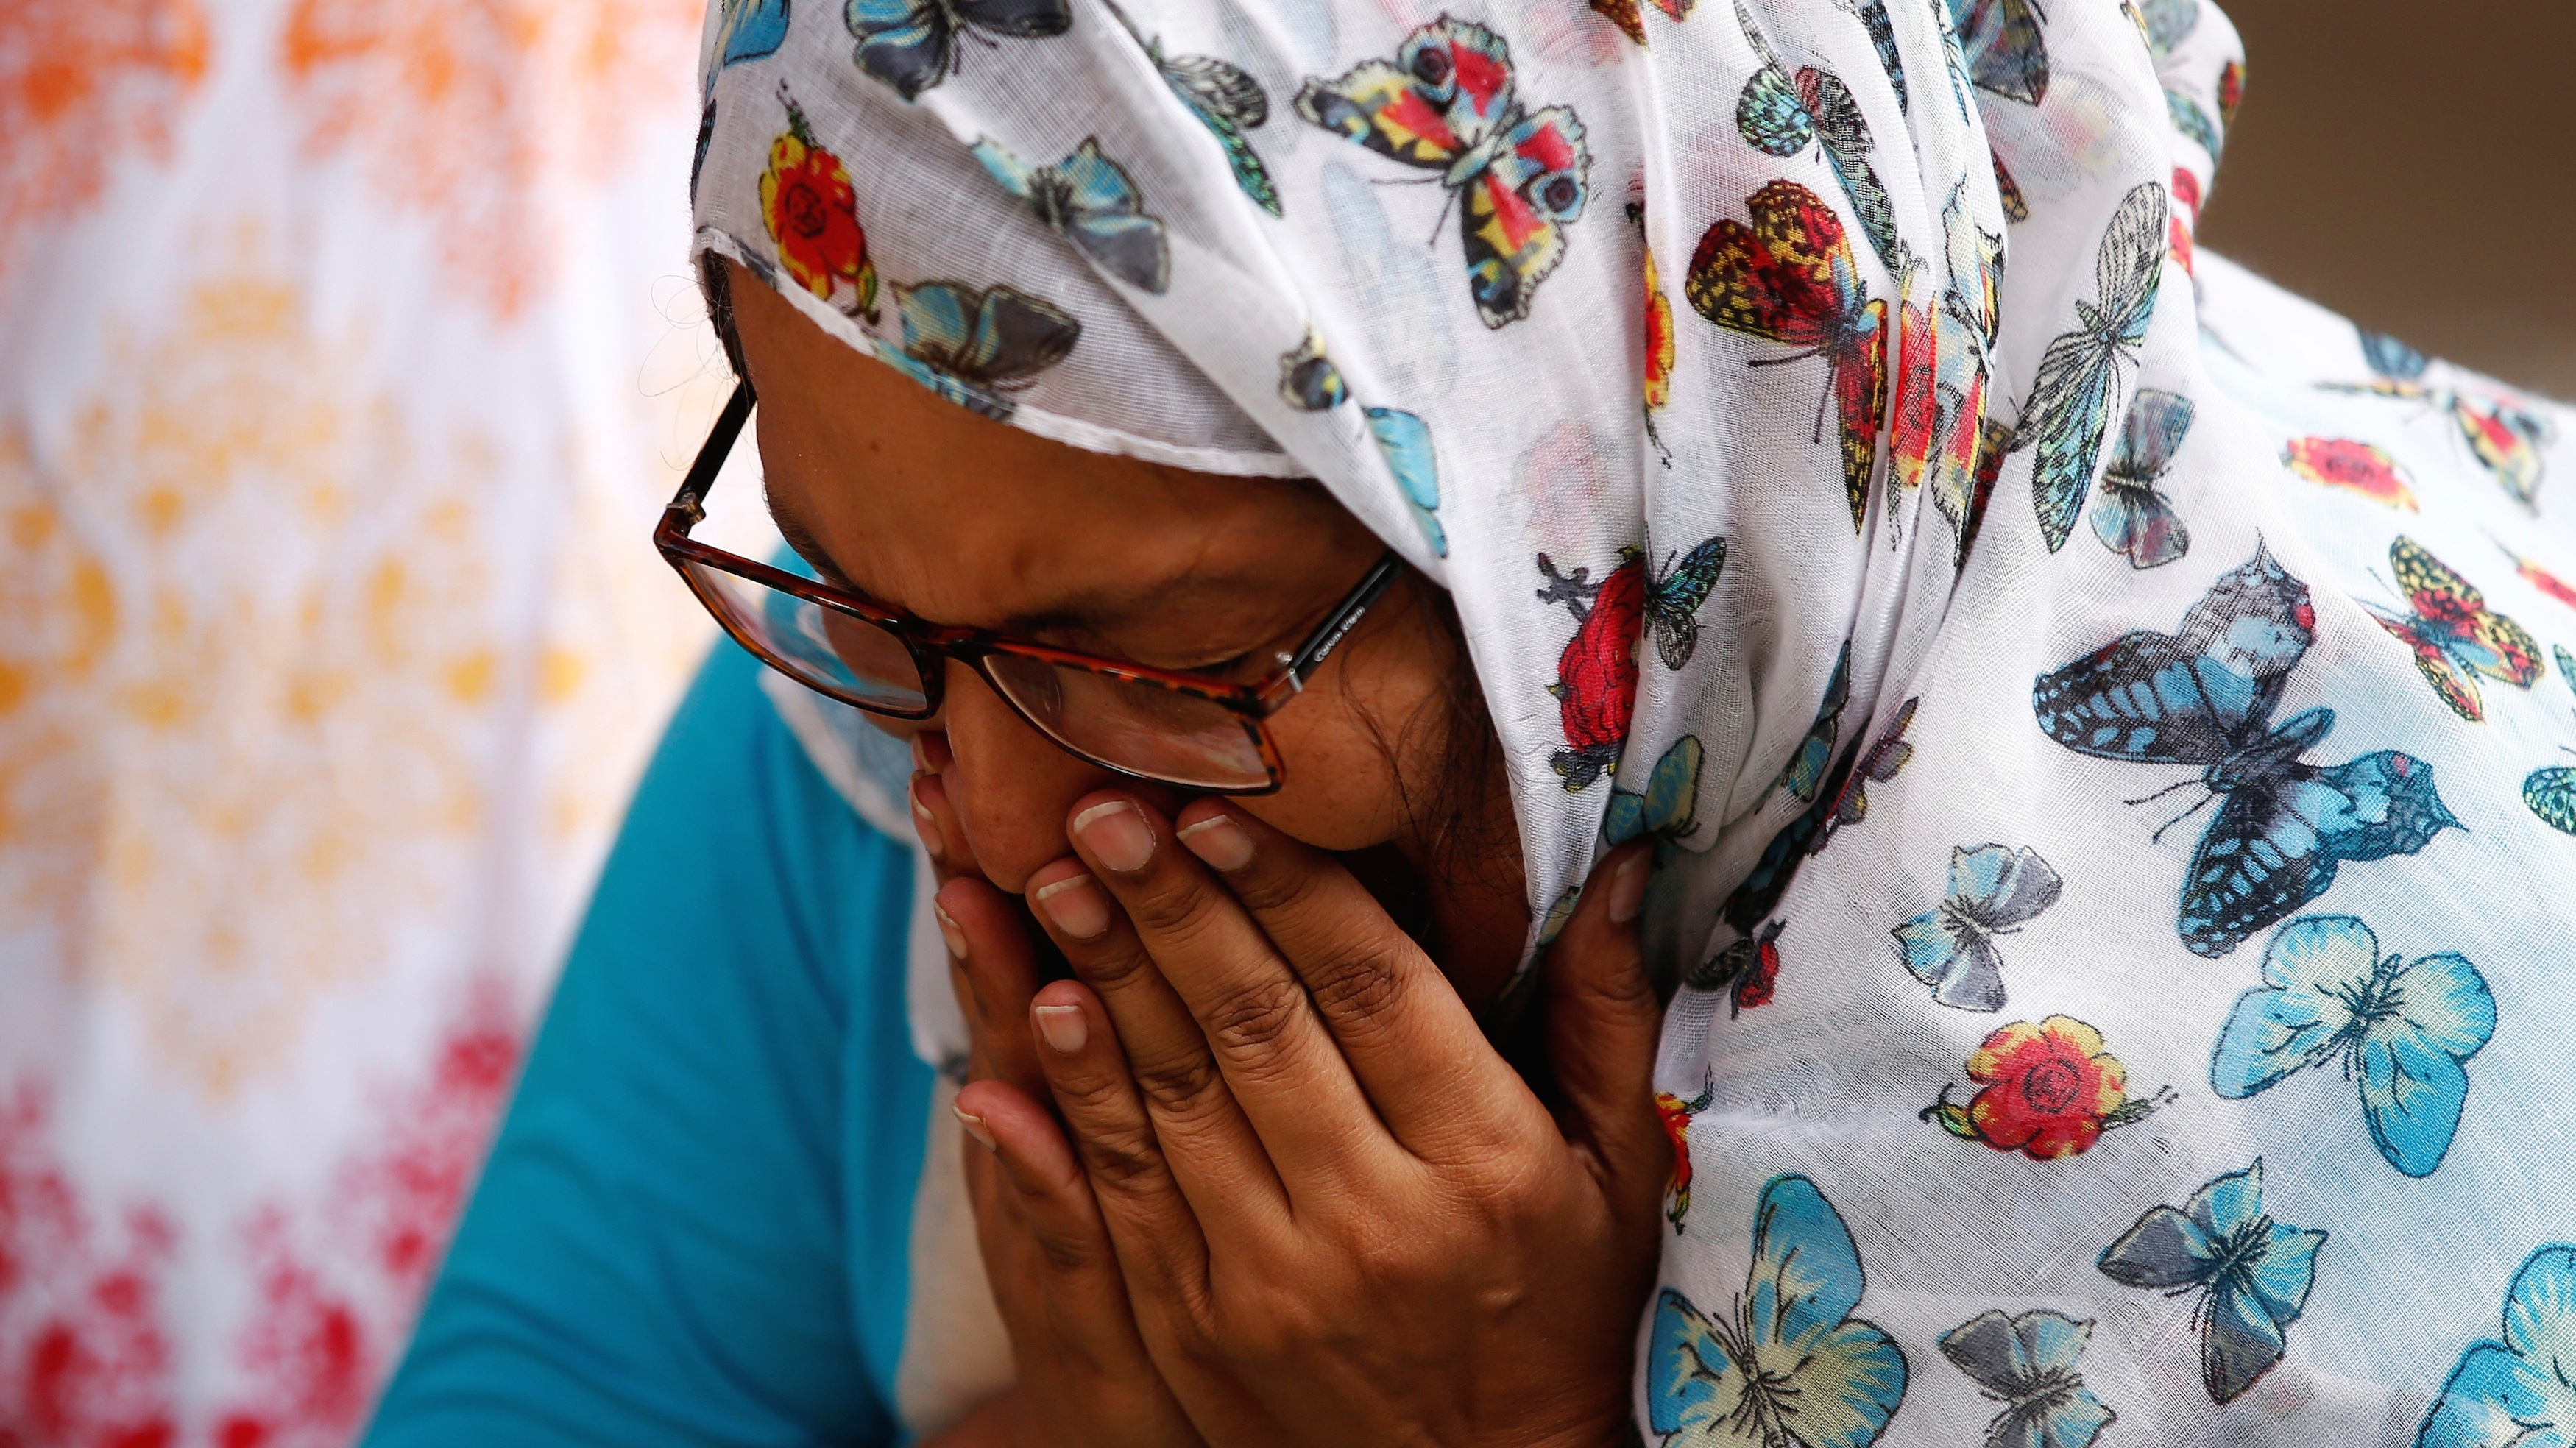 A woman mourns for the victims who were killed in the attack on a restaurant in Dhaka, Bangladesh.